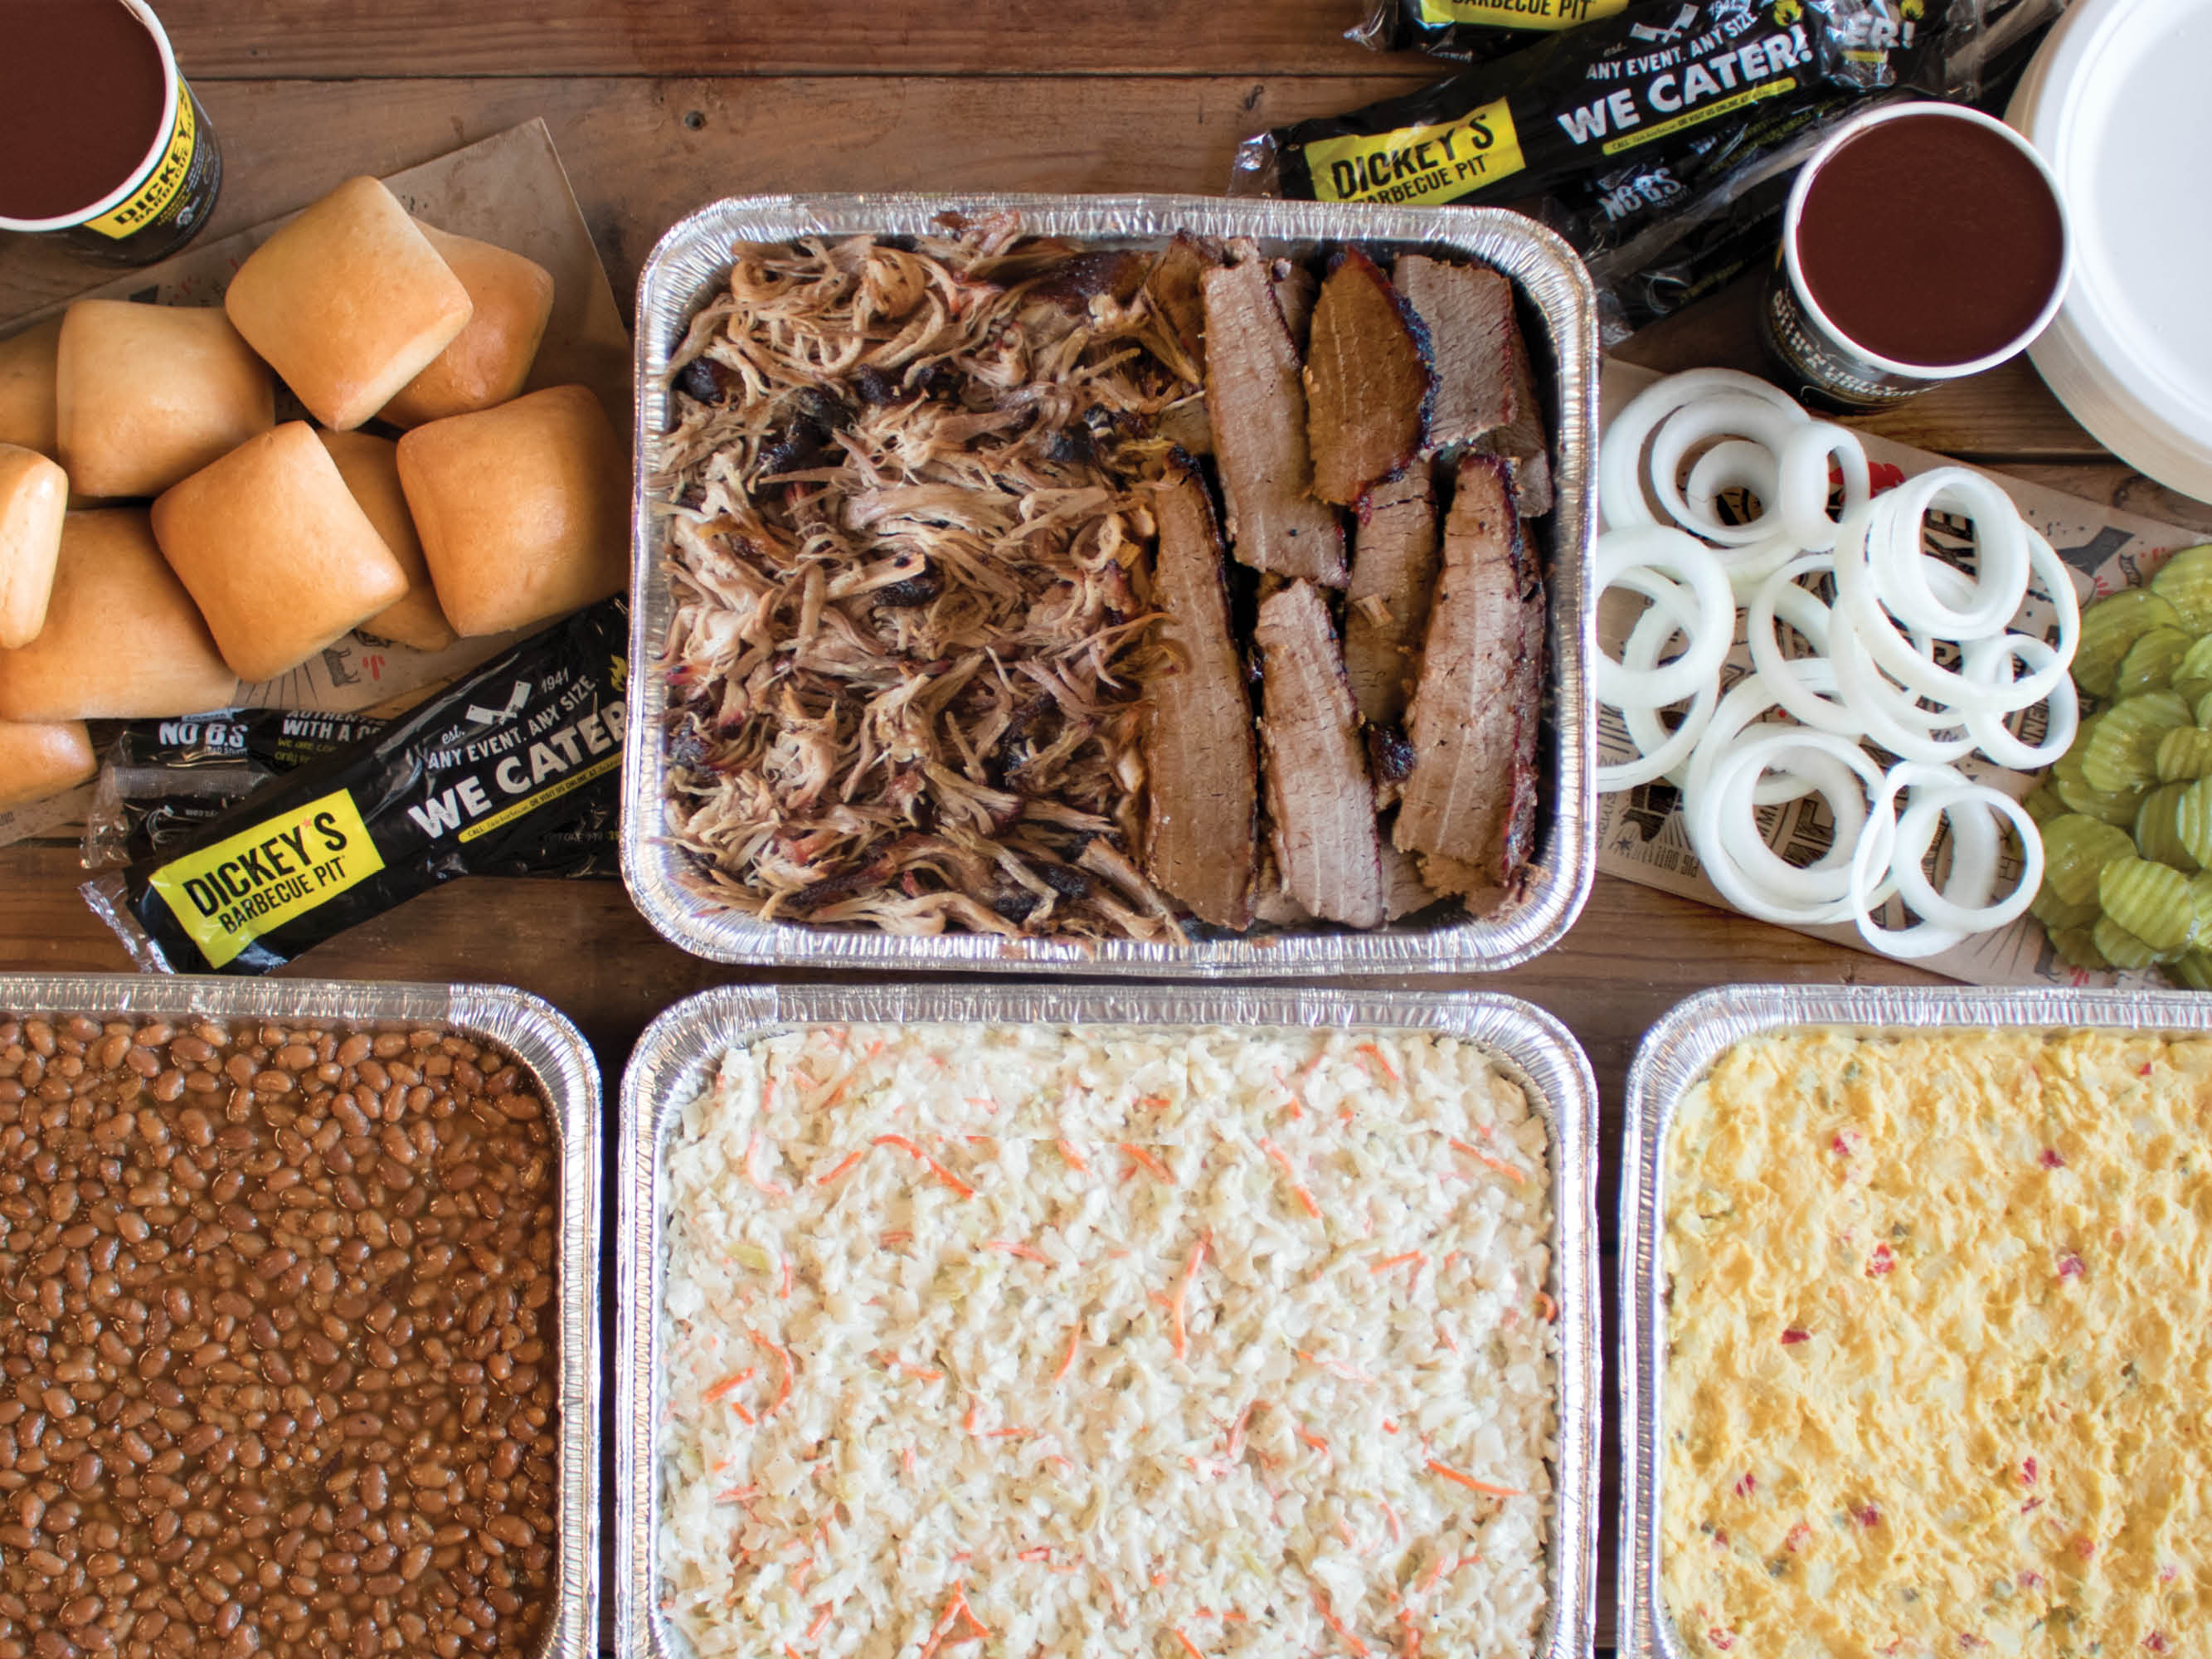 Fast Casual: Dickey's debuts $99 tailgate food pack